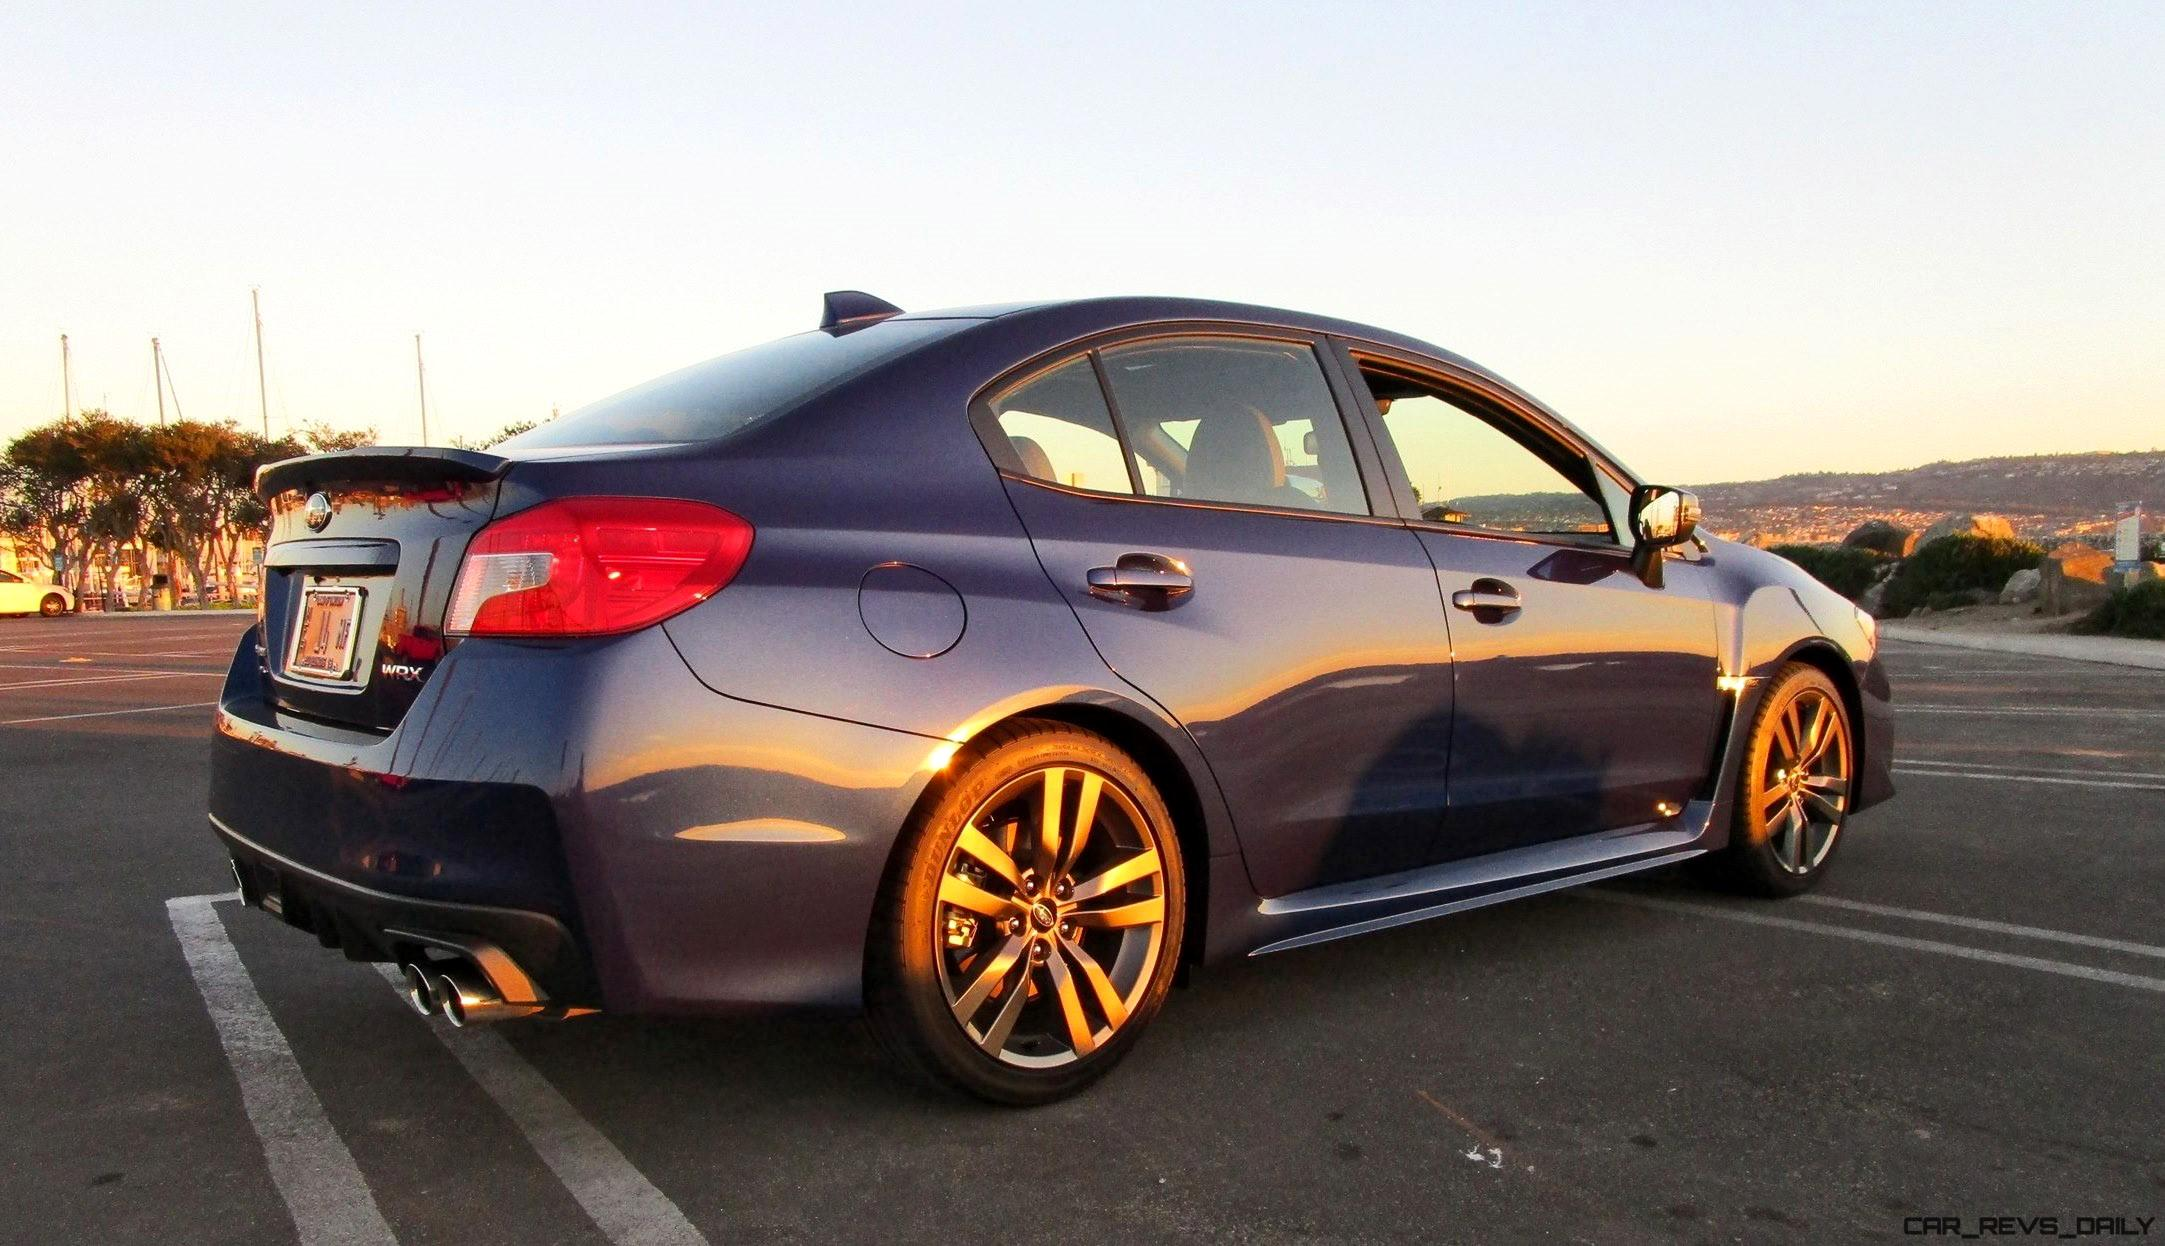 2017 Subaru WRX Limited Sport Lineartronic - Road Test Review - By